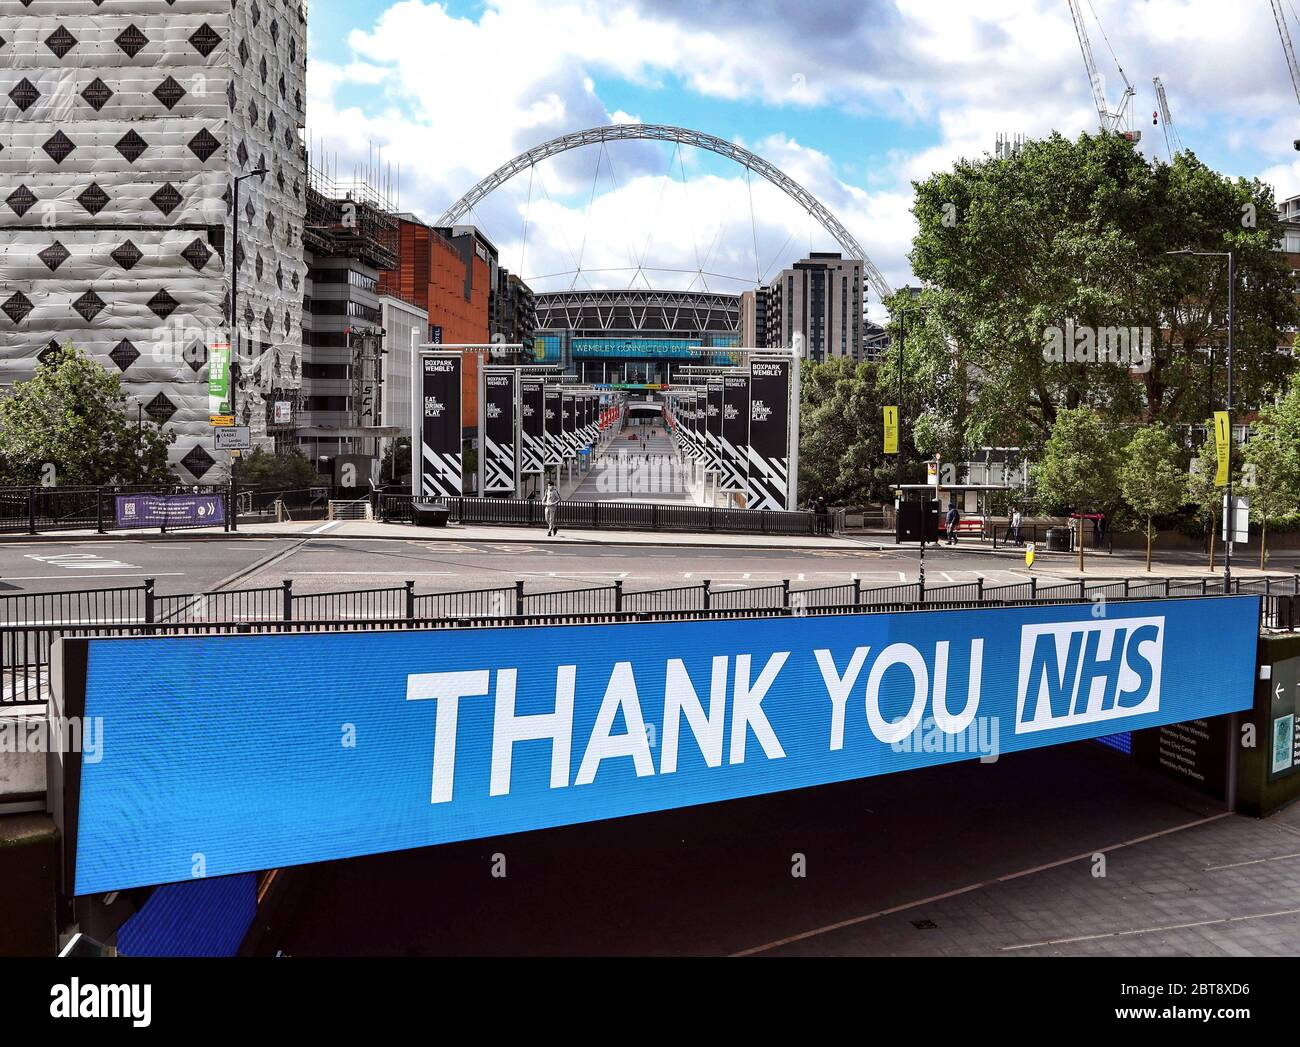 Day Sixty One of Lockdown, in London. A Thank you NHS sign on the bridge over Wembley Way, which is almost empty of people, when normally it would have seen tens of thousands of football fans going to the showpiece of the English football season. Today would have seen the Emirates FA Cup Final being played at Wembley Stadium, but due to the Coronavirus pandemic, it has been postponed. Even though there has been a partial lifting of lockdown, there are still many shops that have to remain closed, including barbers and hairdresser salons, but more people seem to be out and about on the streets a Stock Photo